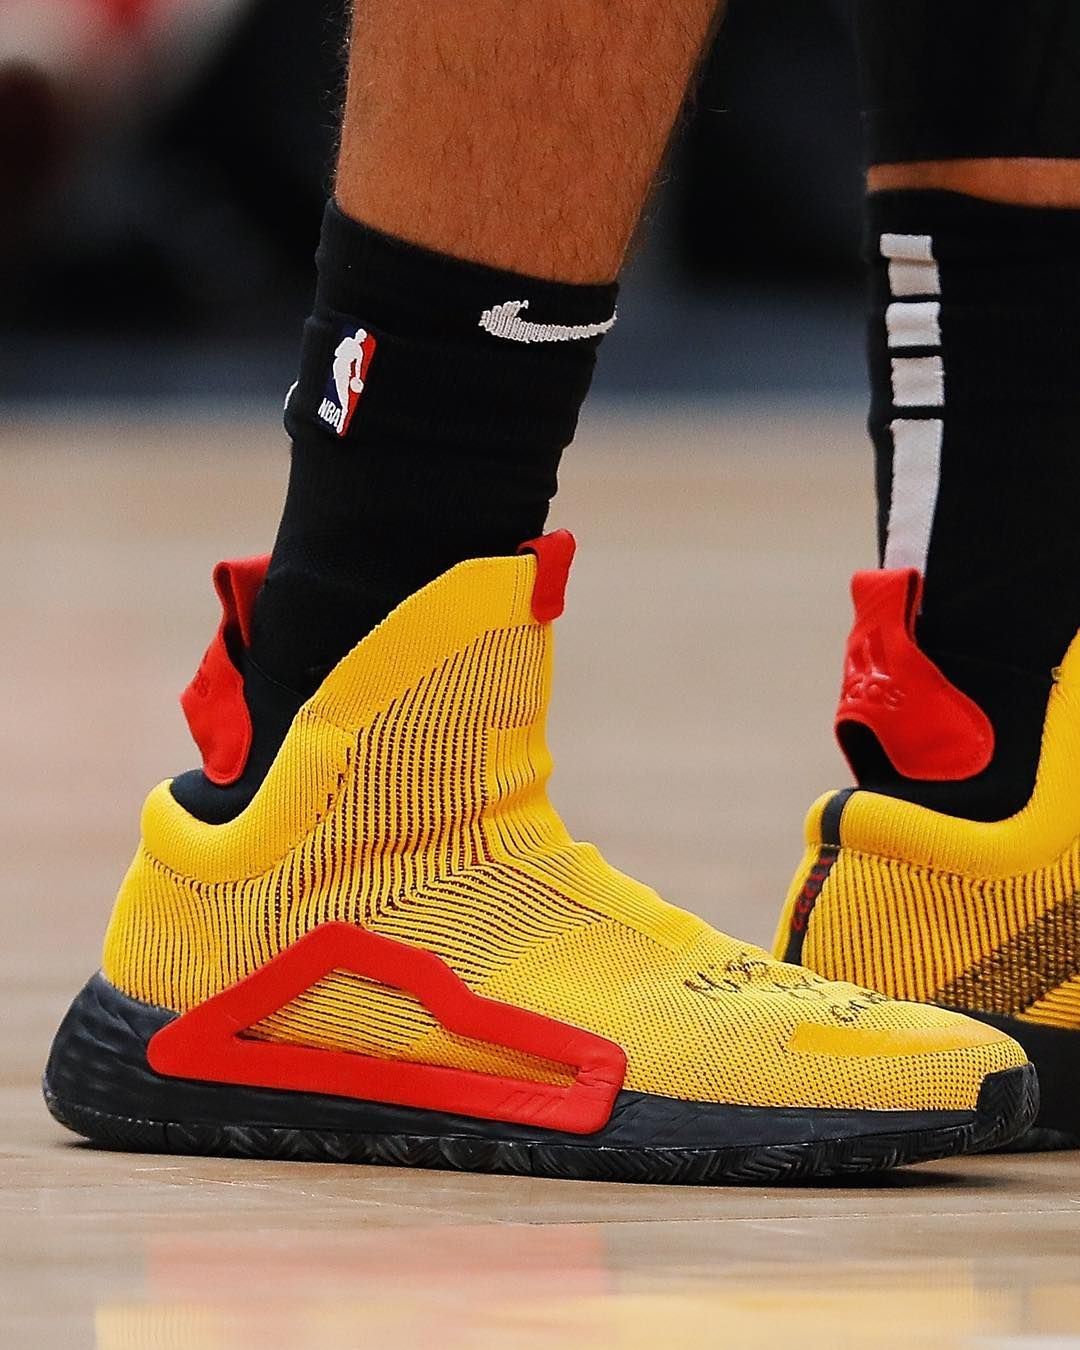 "ebe146b68eb5 Bleacher Report Kicks on Instagram  "" TraeYoung wearing the Adidas N3XT  L3V3L tonight against Washington. 👀"""